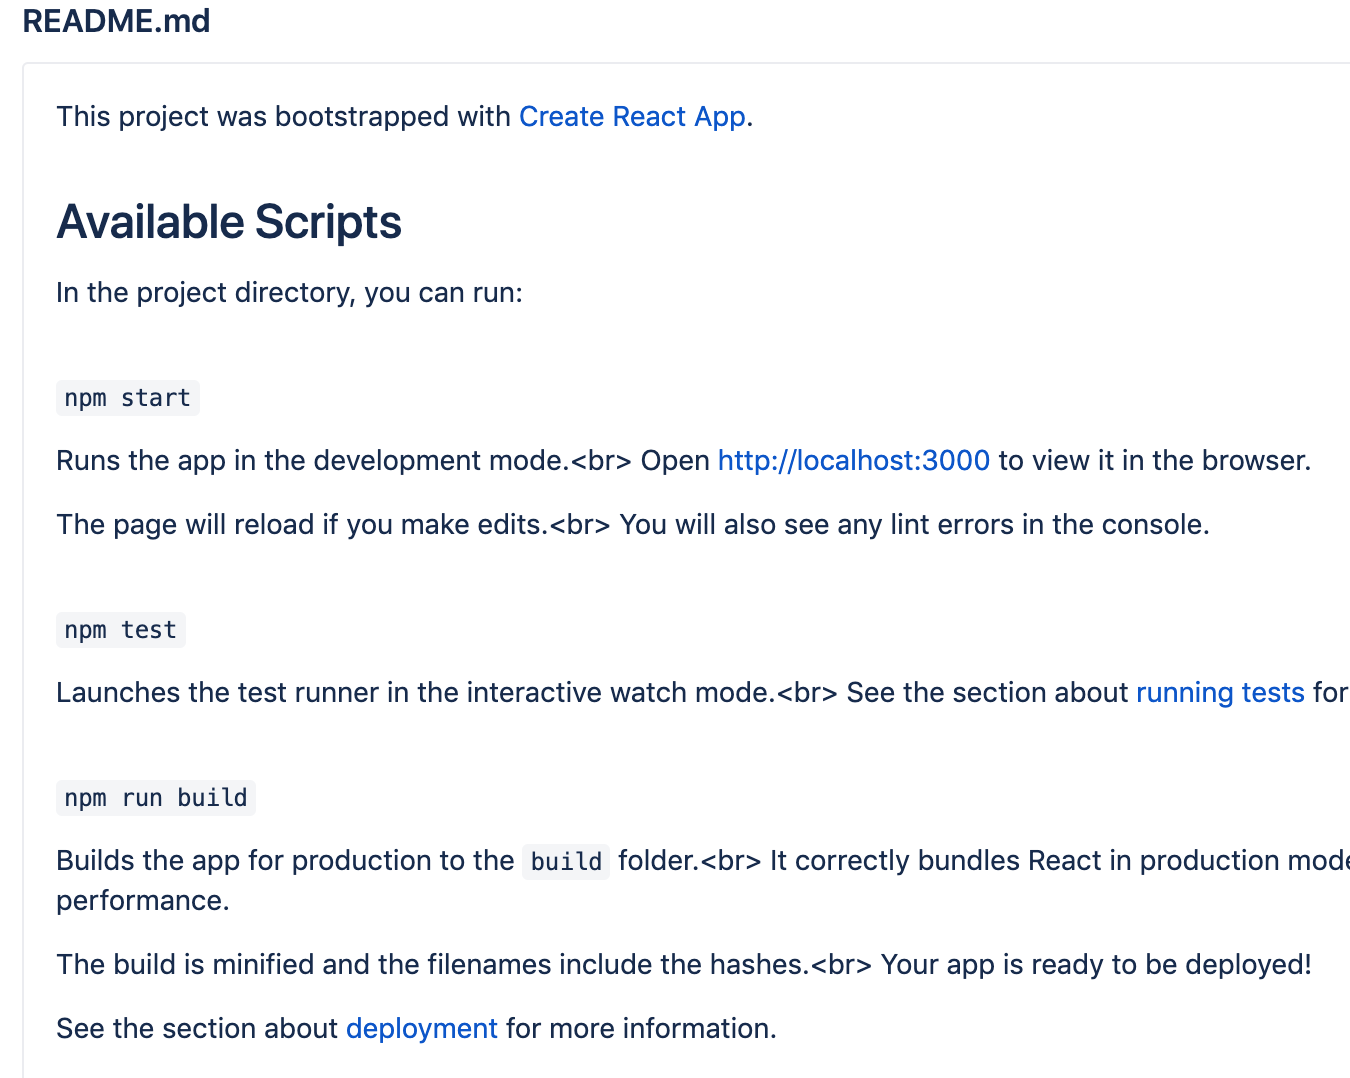 react-scripts README template contains <br> which shows on